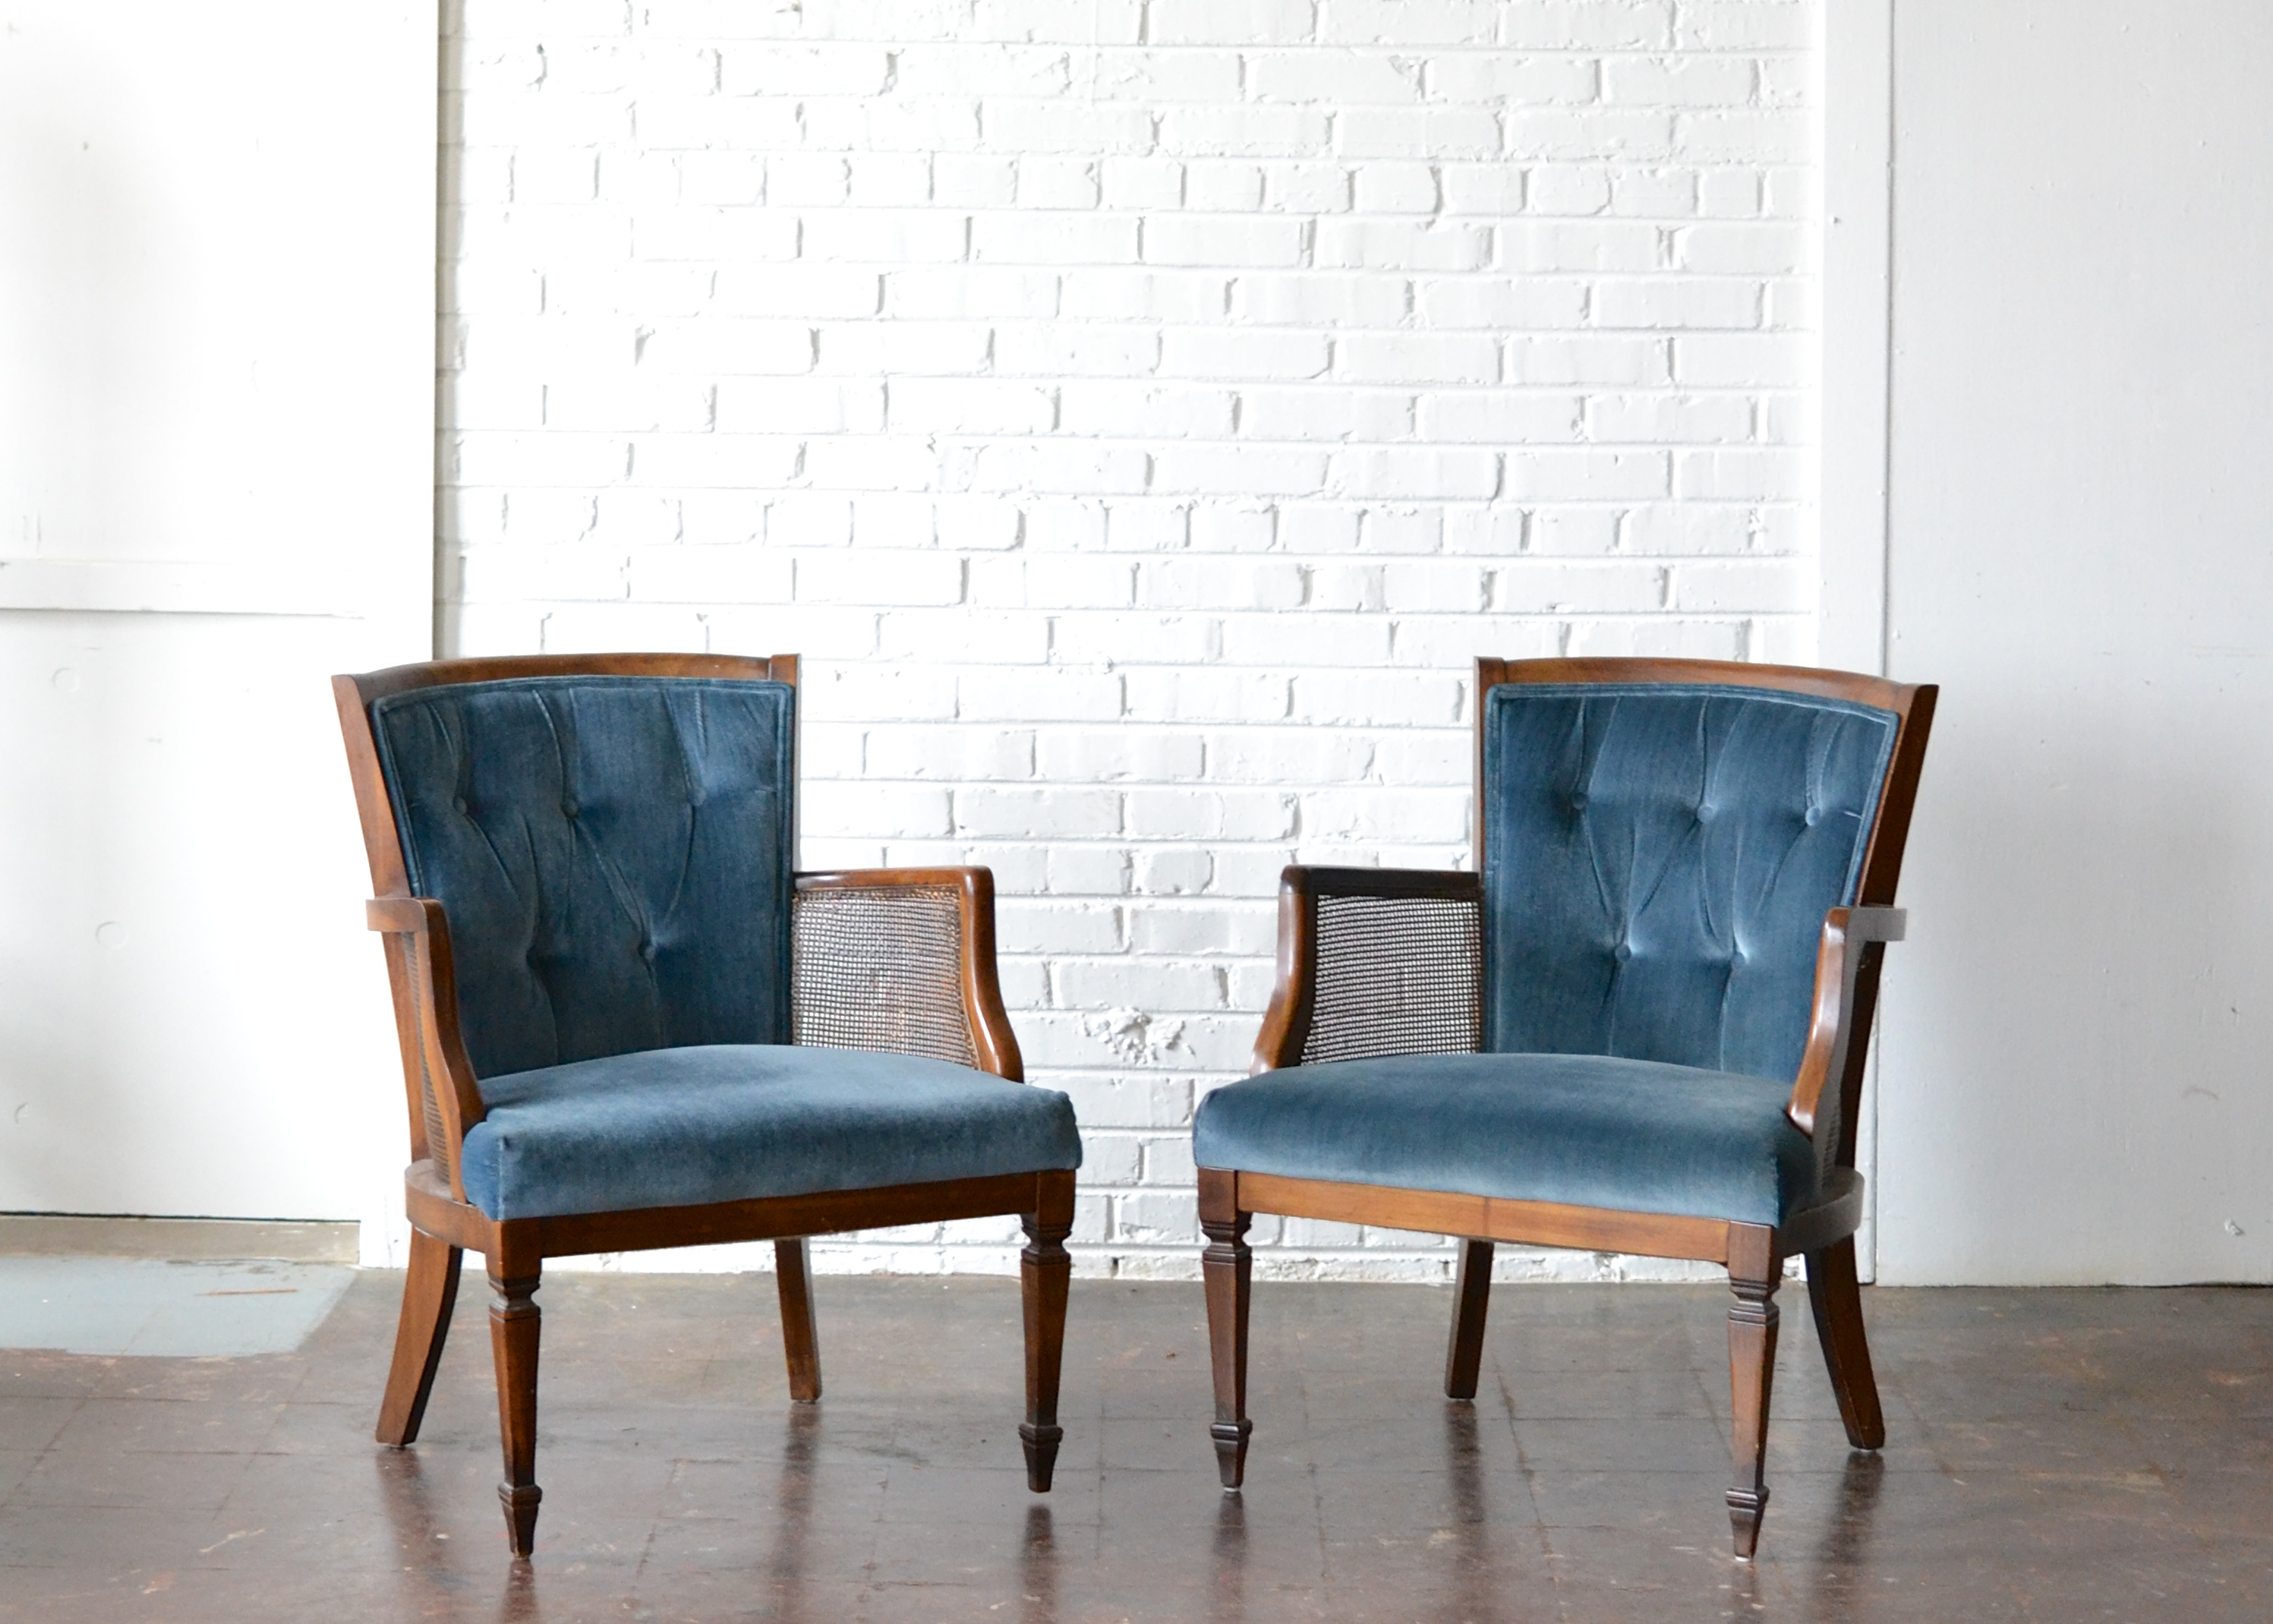 Hayward tufted chair rentals online 55 day Home rental furniture hayward